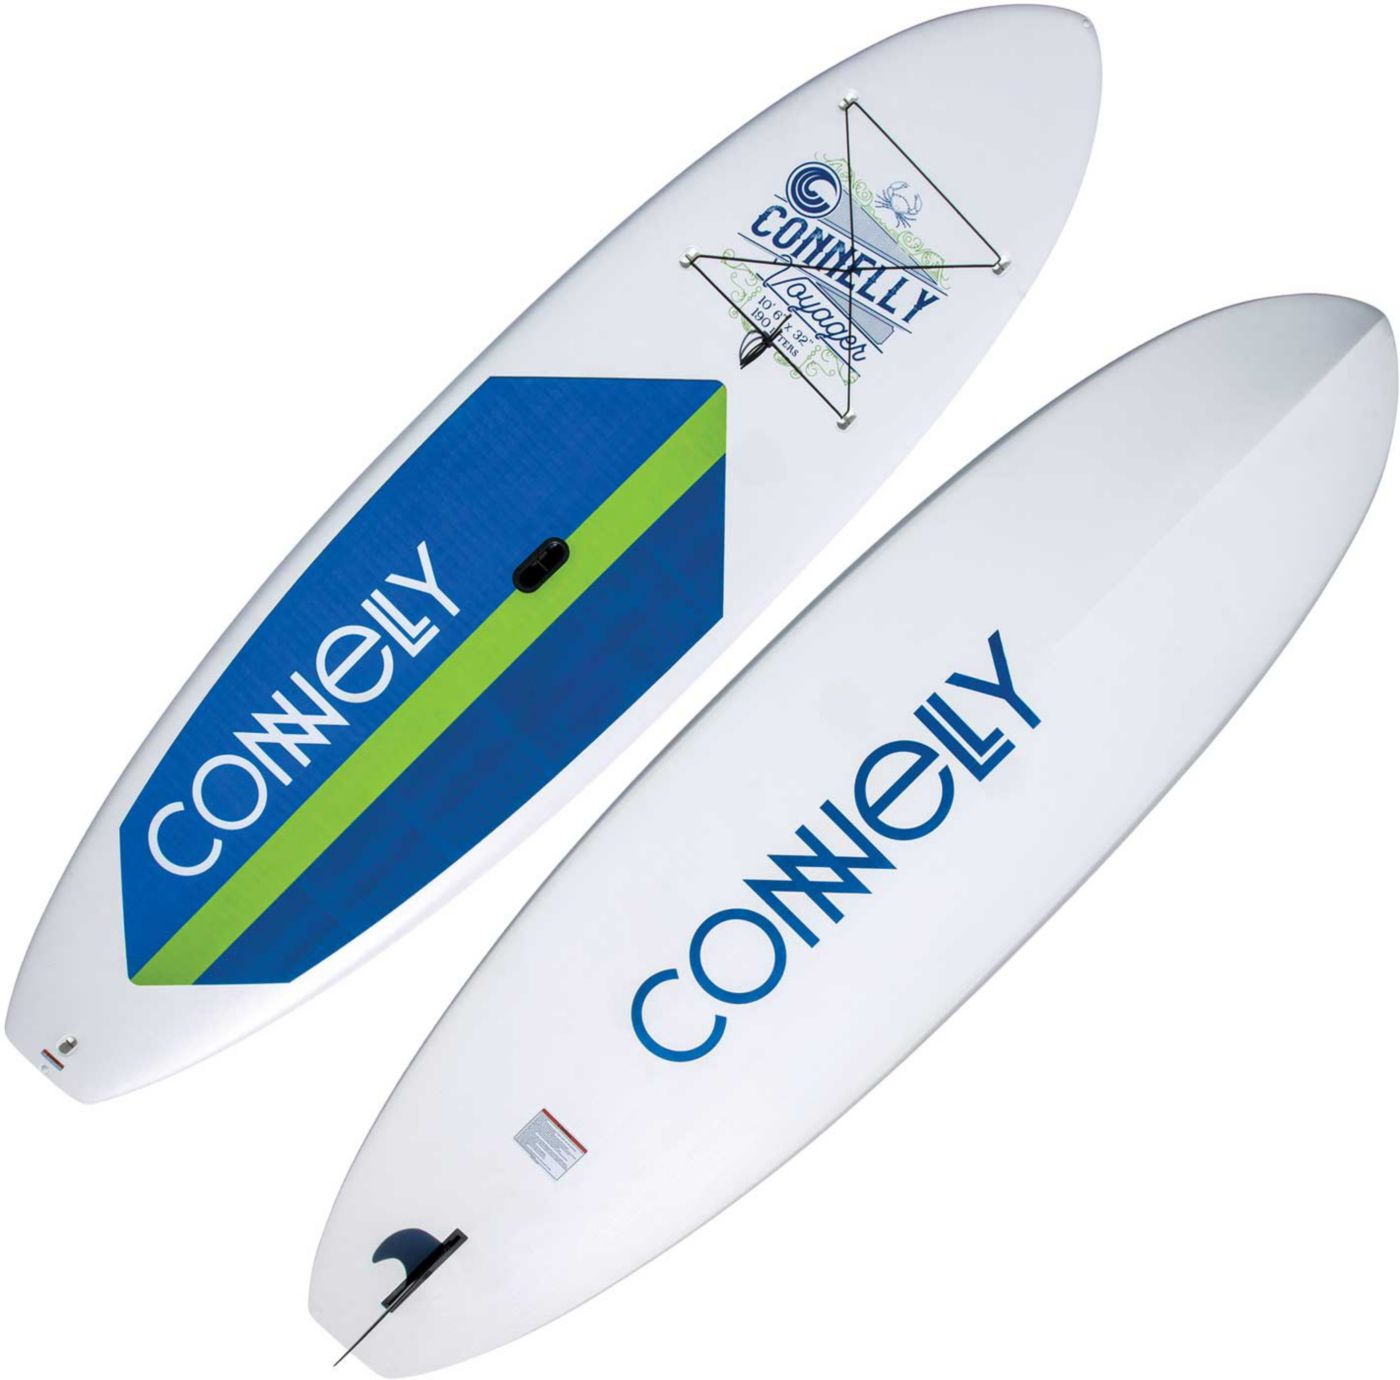 Connelly Voyager 2.0 Stand-Up Paddle Board